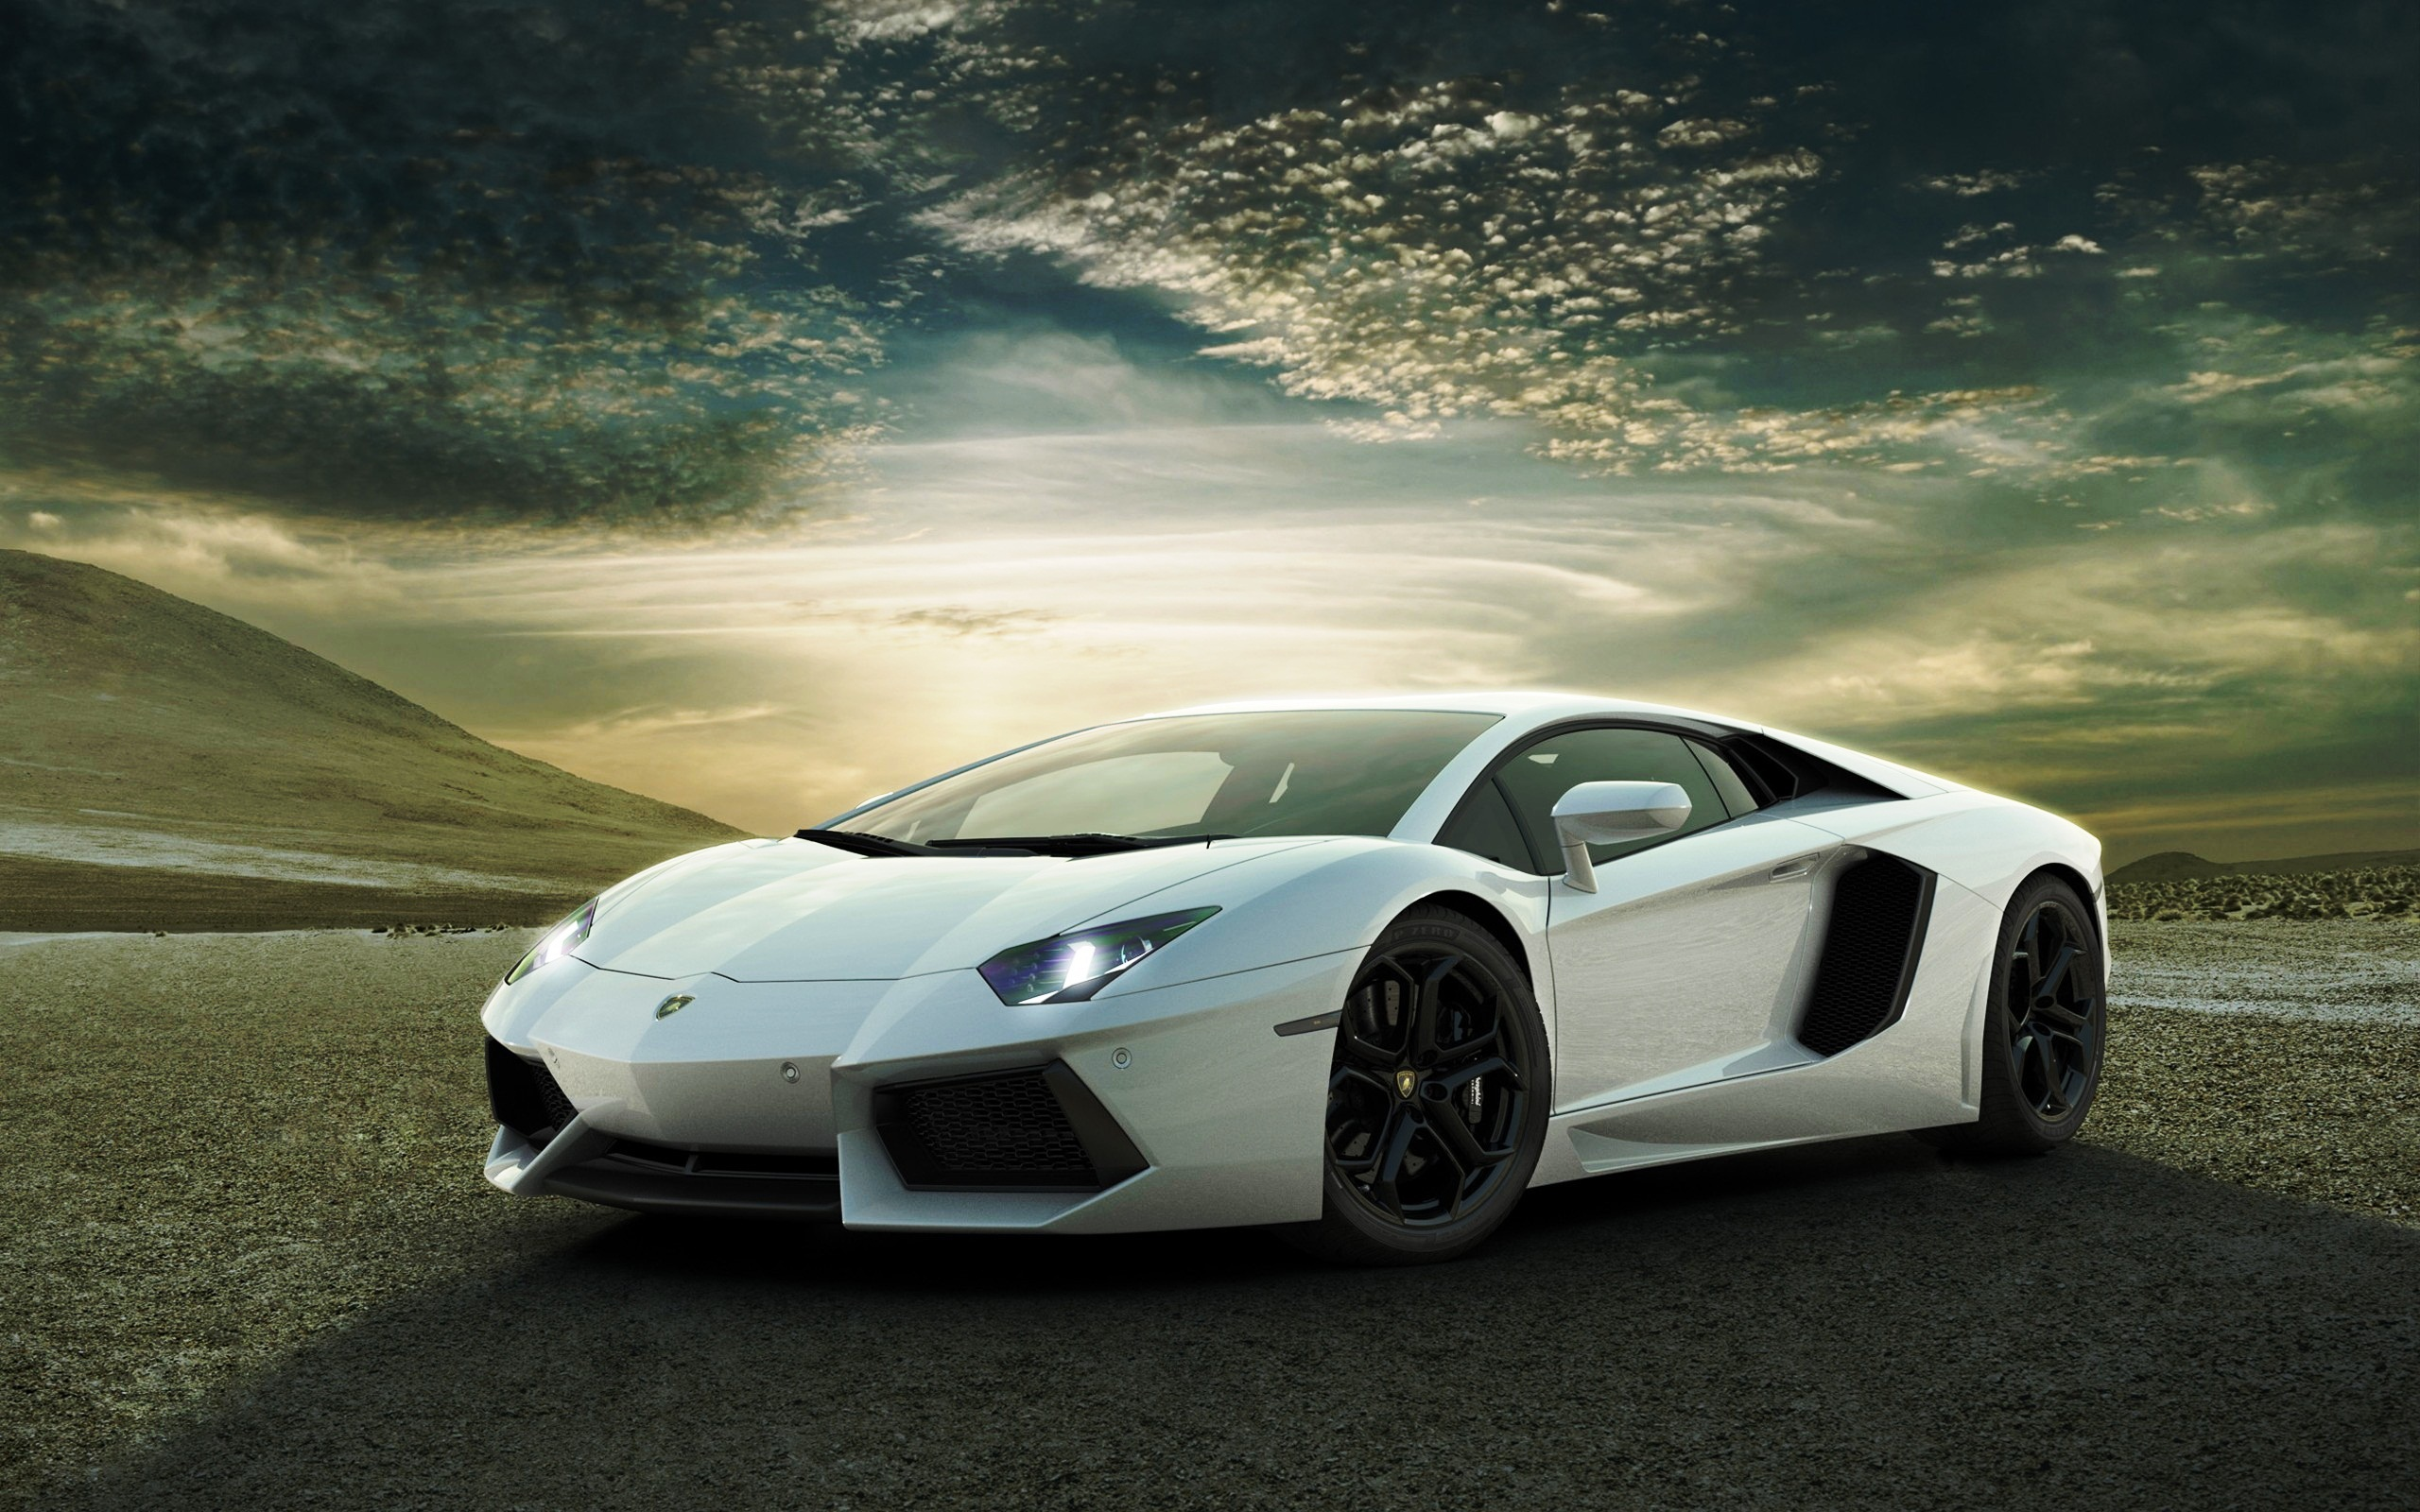 Valentine Day Wallpaper With Quotes Lamborghini Aventador Wallpapers Free Download